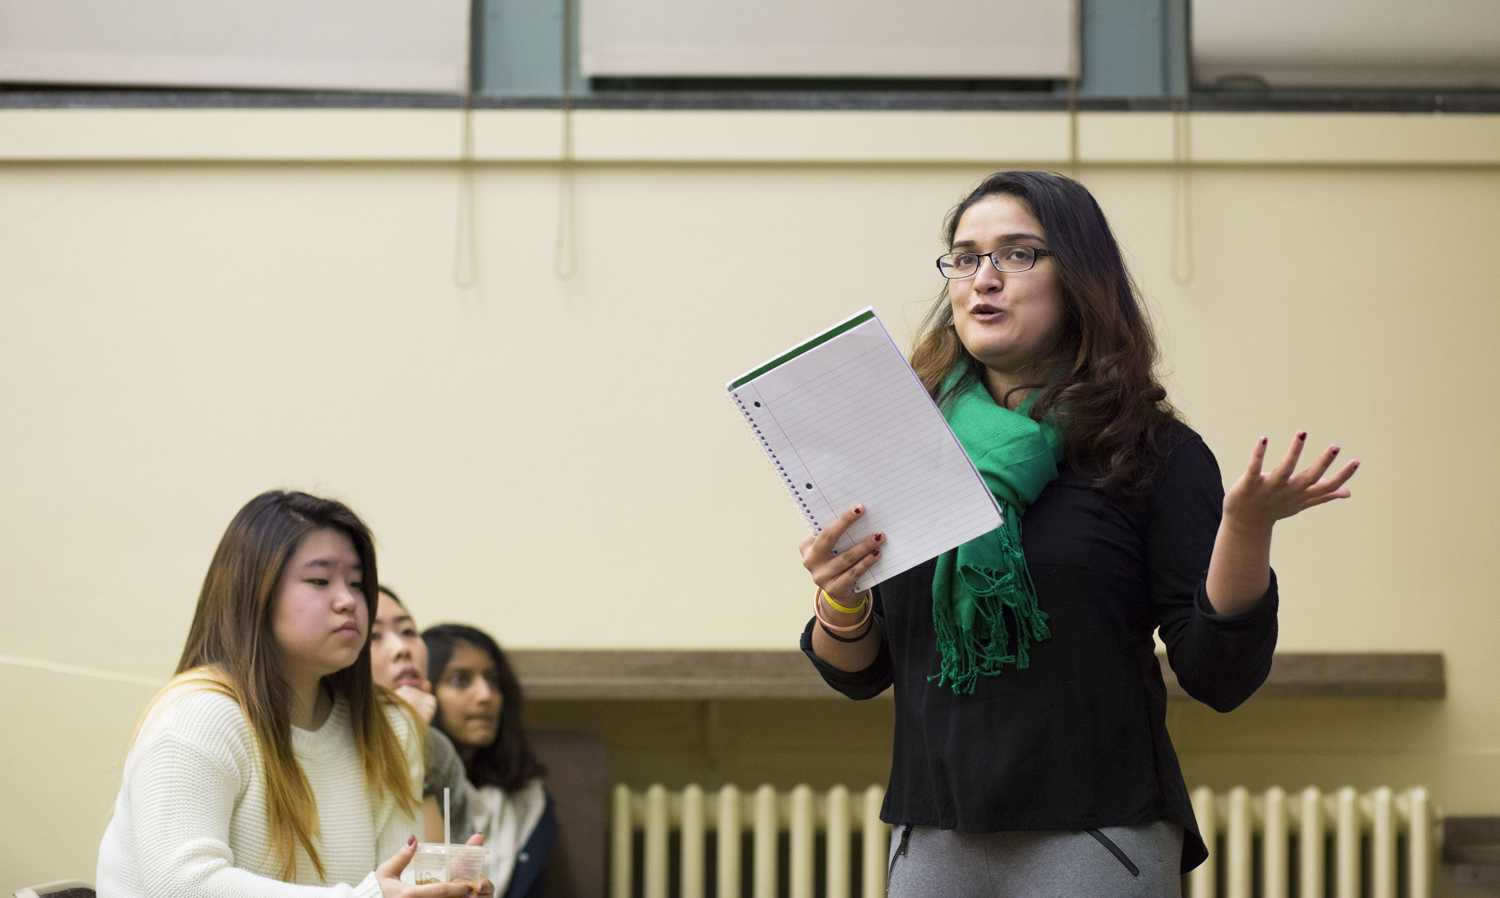 """Rukmini Foundation liaison Bhakti Patel discusses the importance of women's education in Nepal at the Asian Student Association's """"Above and Beyond the Bamboo Ceiling"""" event Wednesday night. (Photo by Thomas Yang 